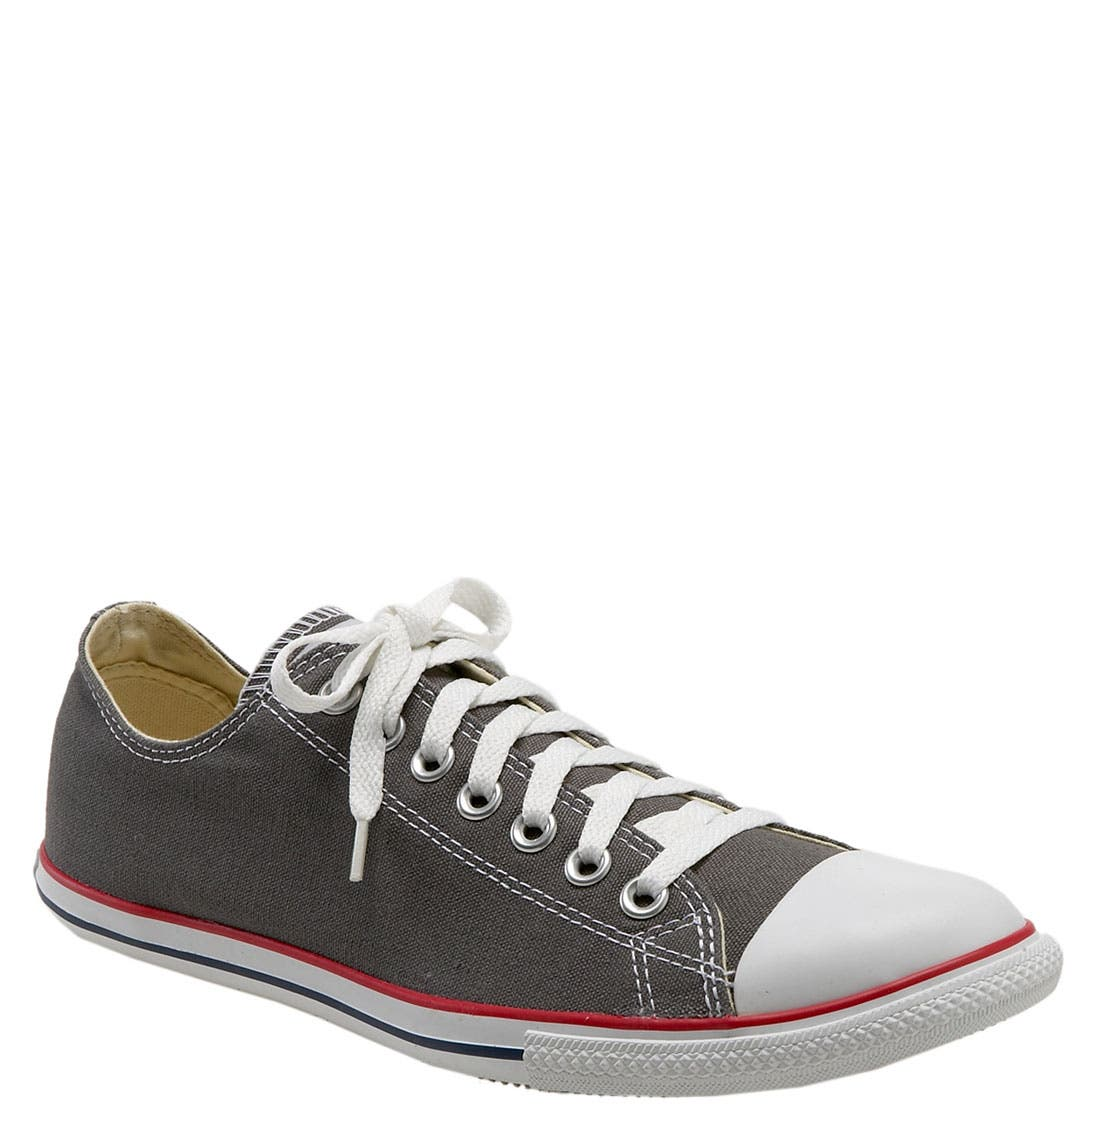 Alternate Image 1 Selected - Converse Chuck Taylor® 'Slim' Low Top Leather Sneaker (Men)